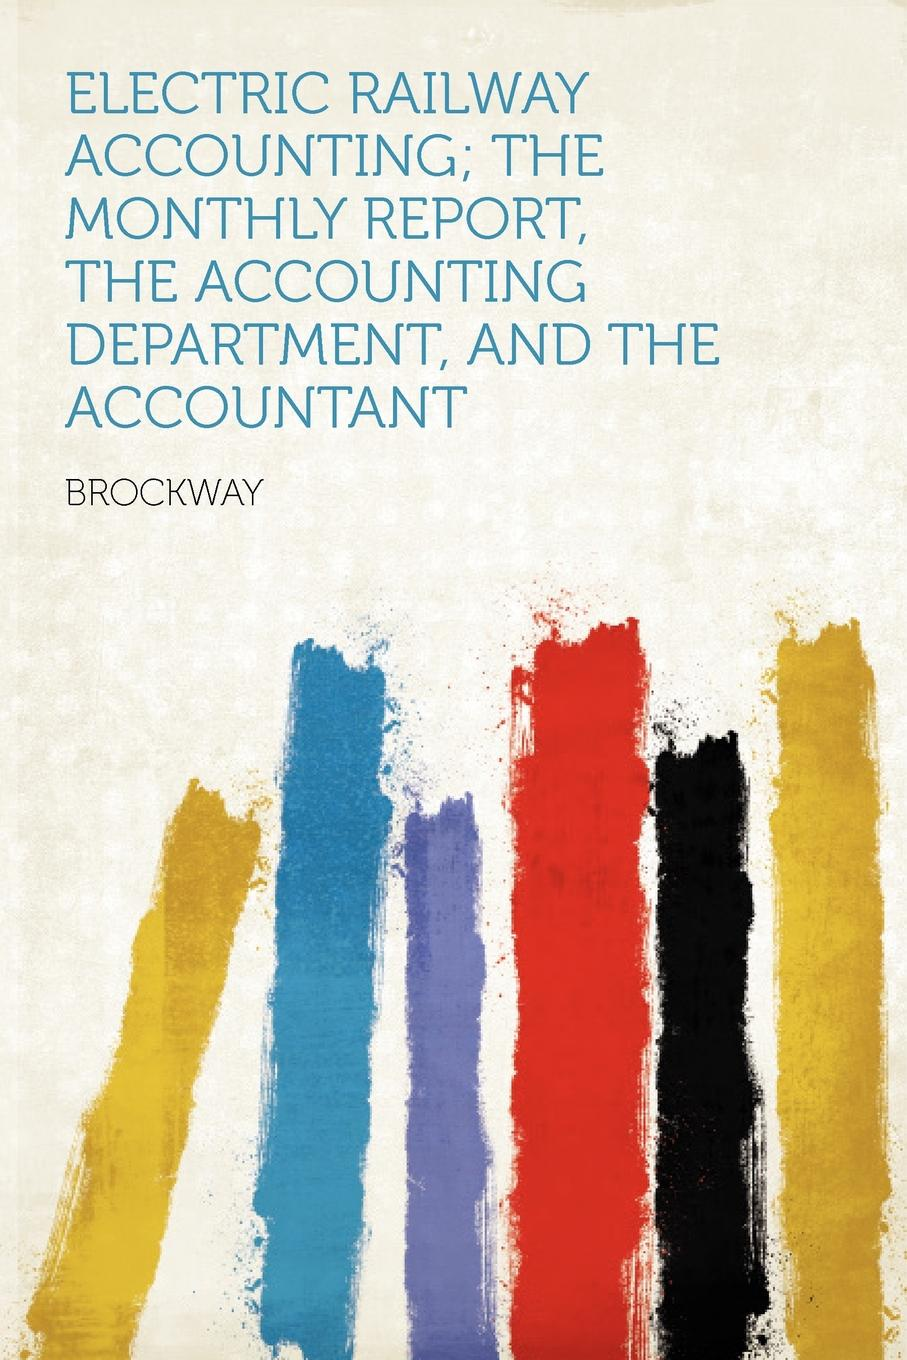 Electric Railway Accounting; the Monthly Report, the Accounting Department, and the Accountant.